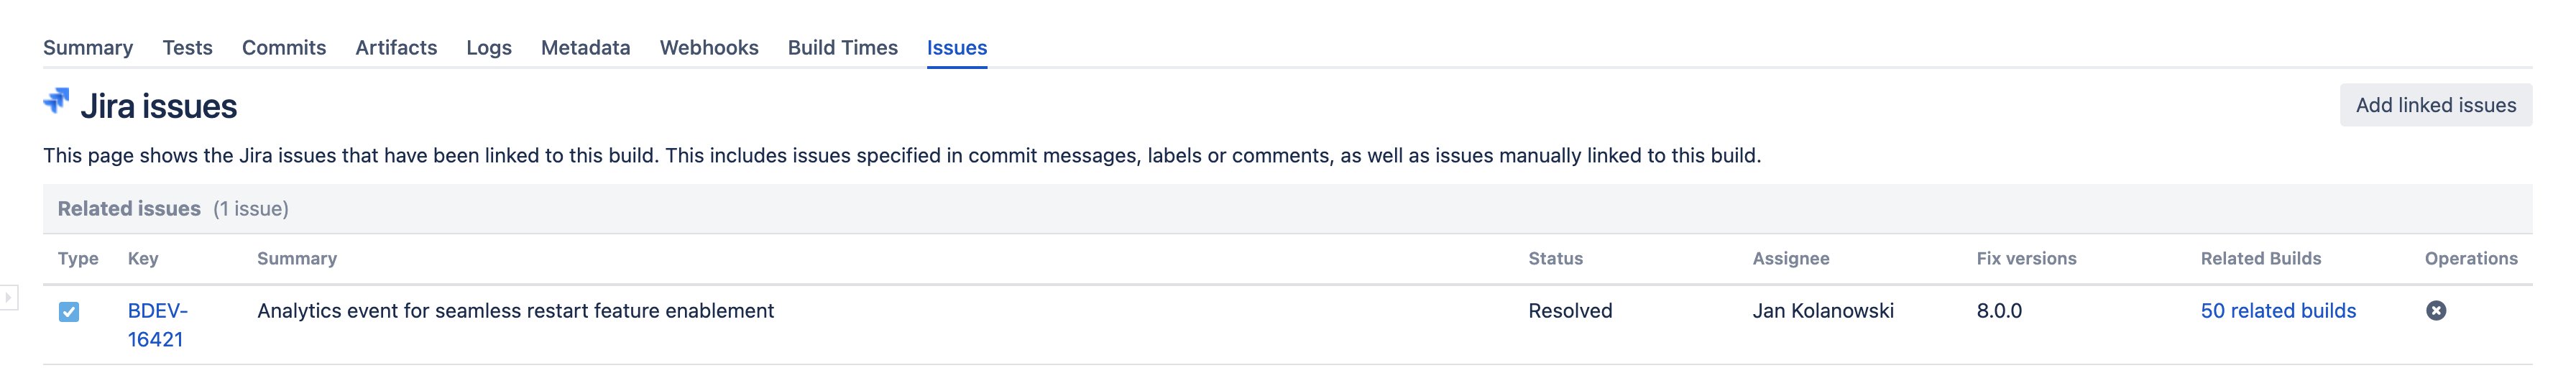 Jira issues in the Issues tab of build summary